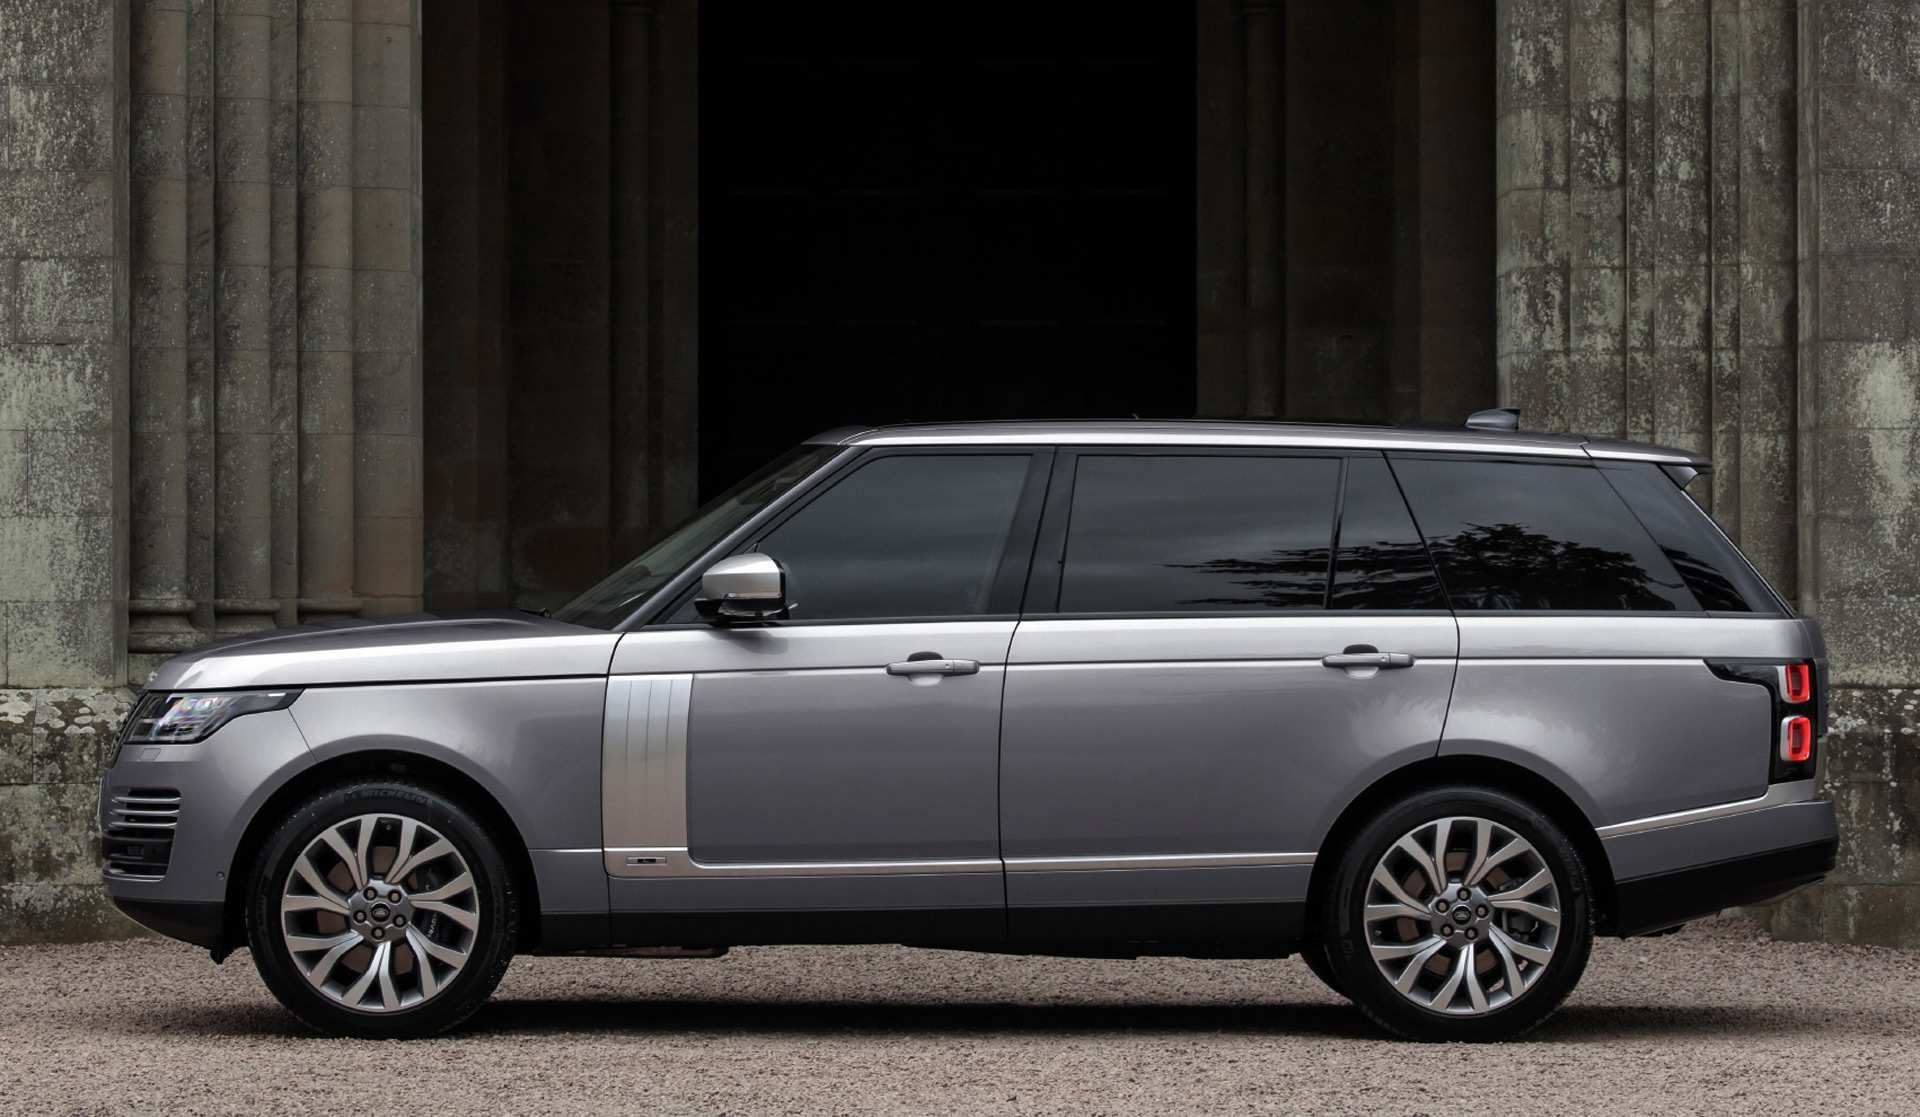 65 New 2020 Land Rover Release Date